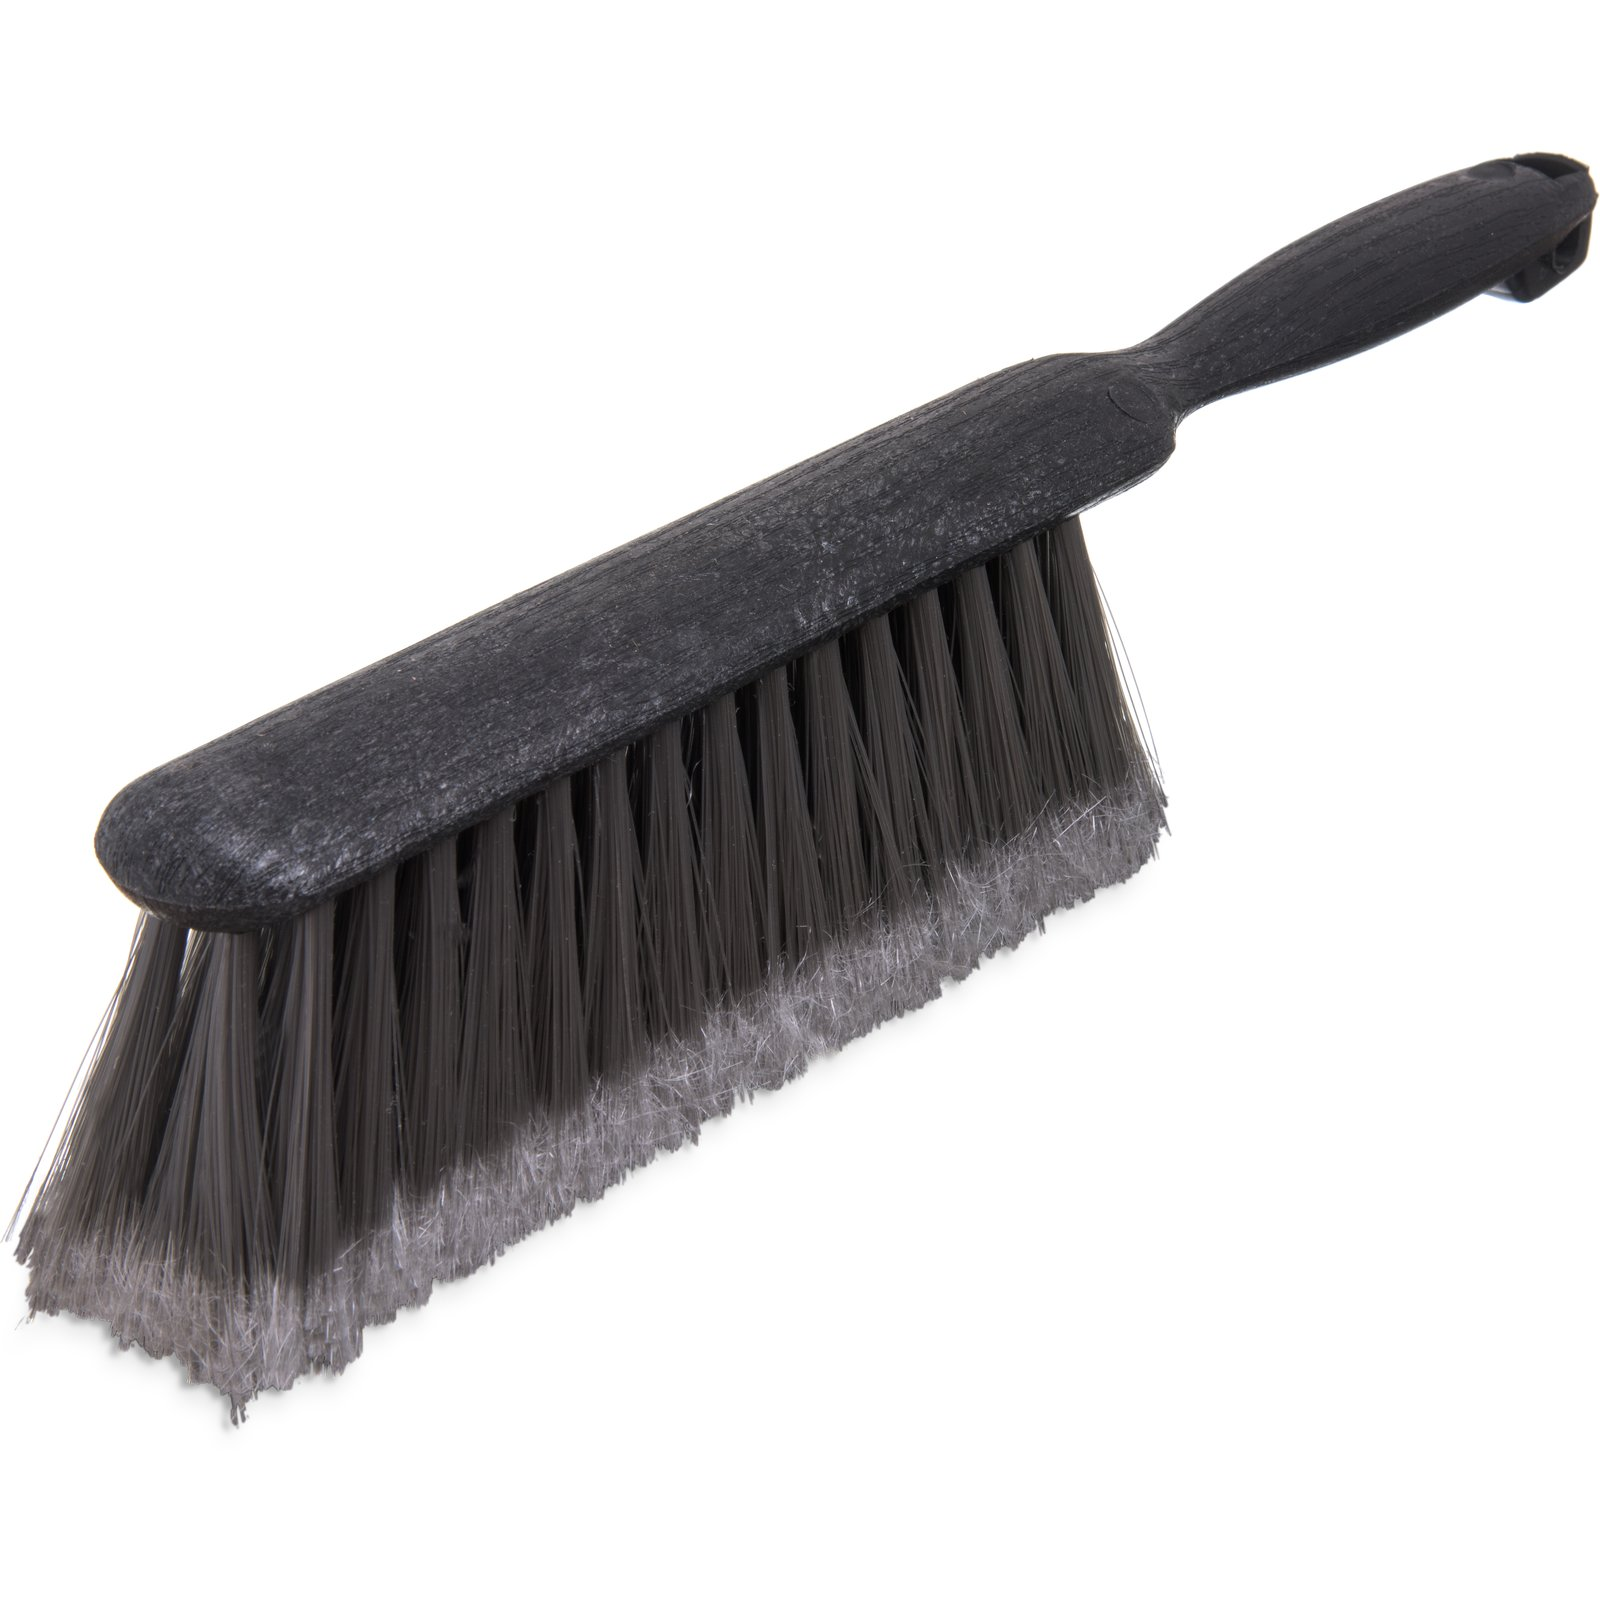 "BRUSH COUNTER 8"" FLAGGED (12 PER CASE)"